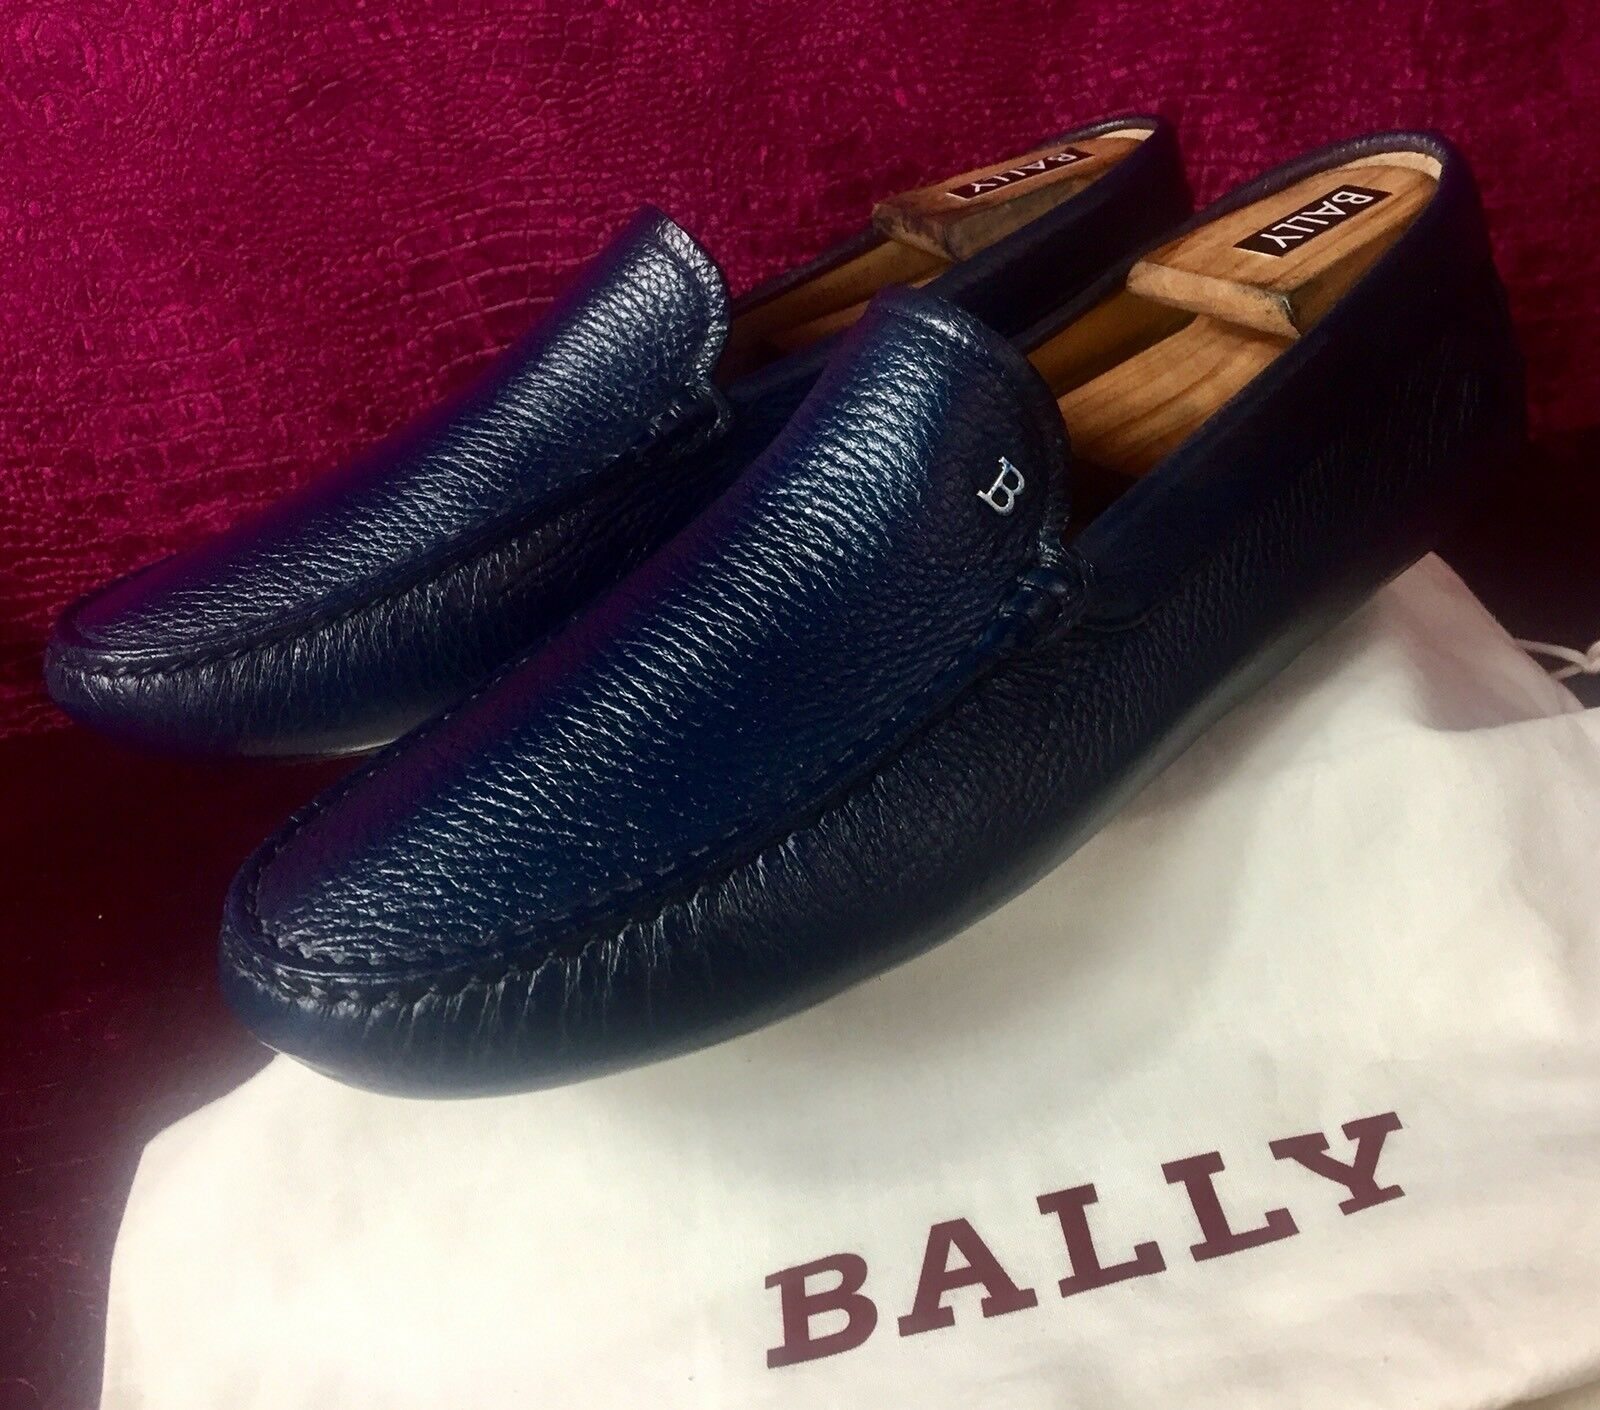 Uomo Blue Bally Pelle Drivers Shoes Sz 10.5 UK / 11.5   / 44,5 EU w/ Dust Bag